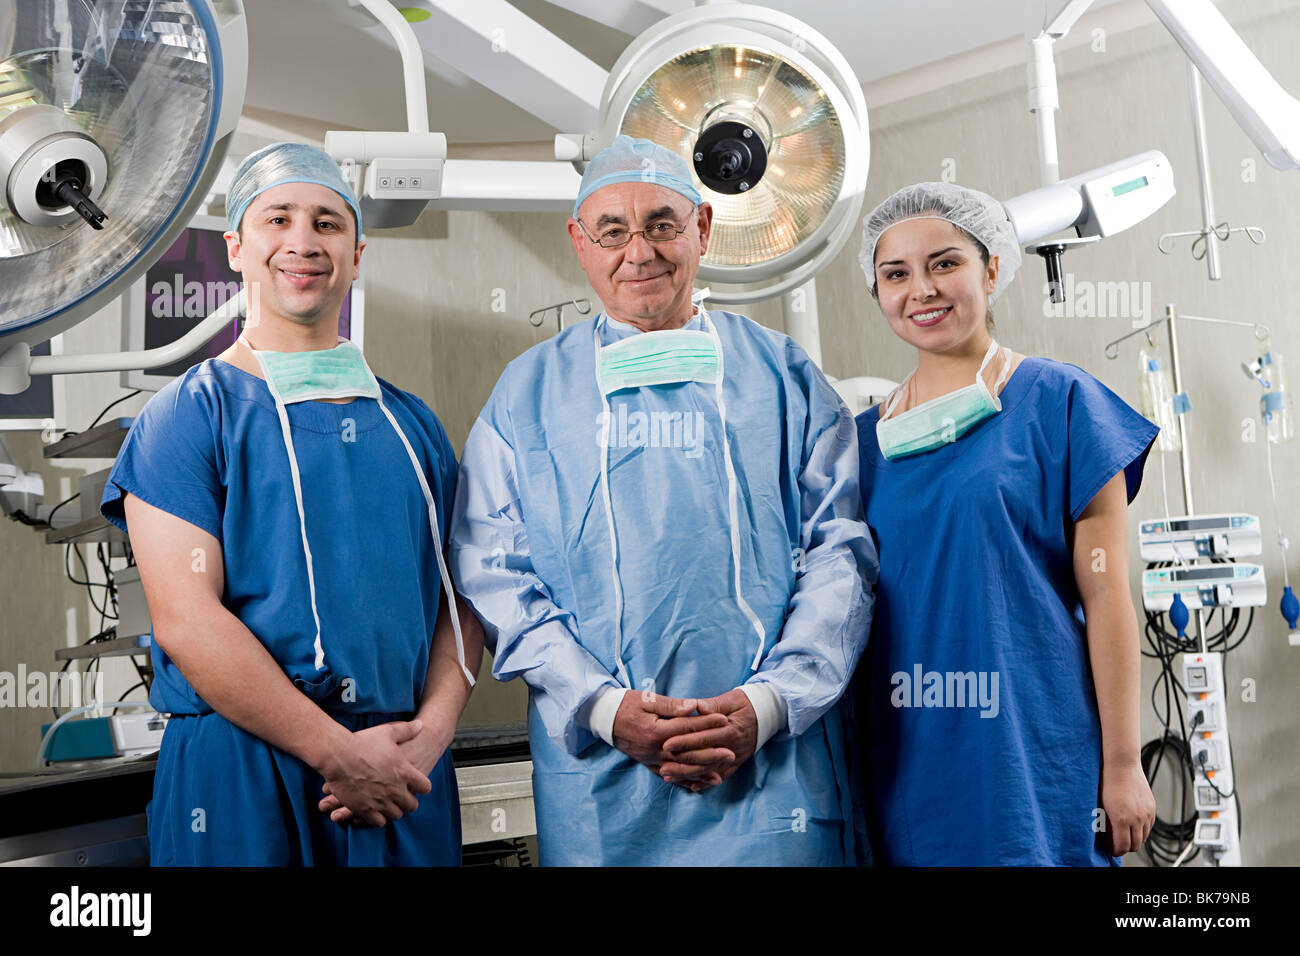 Surgeons in operating room - Stock Image